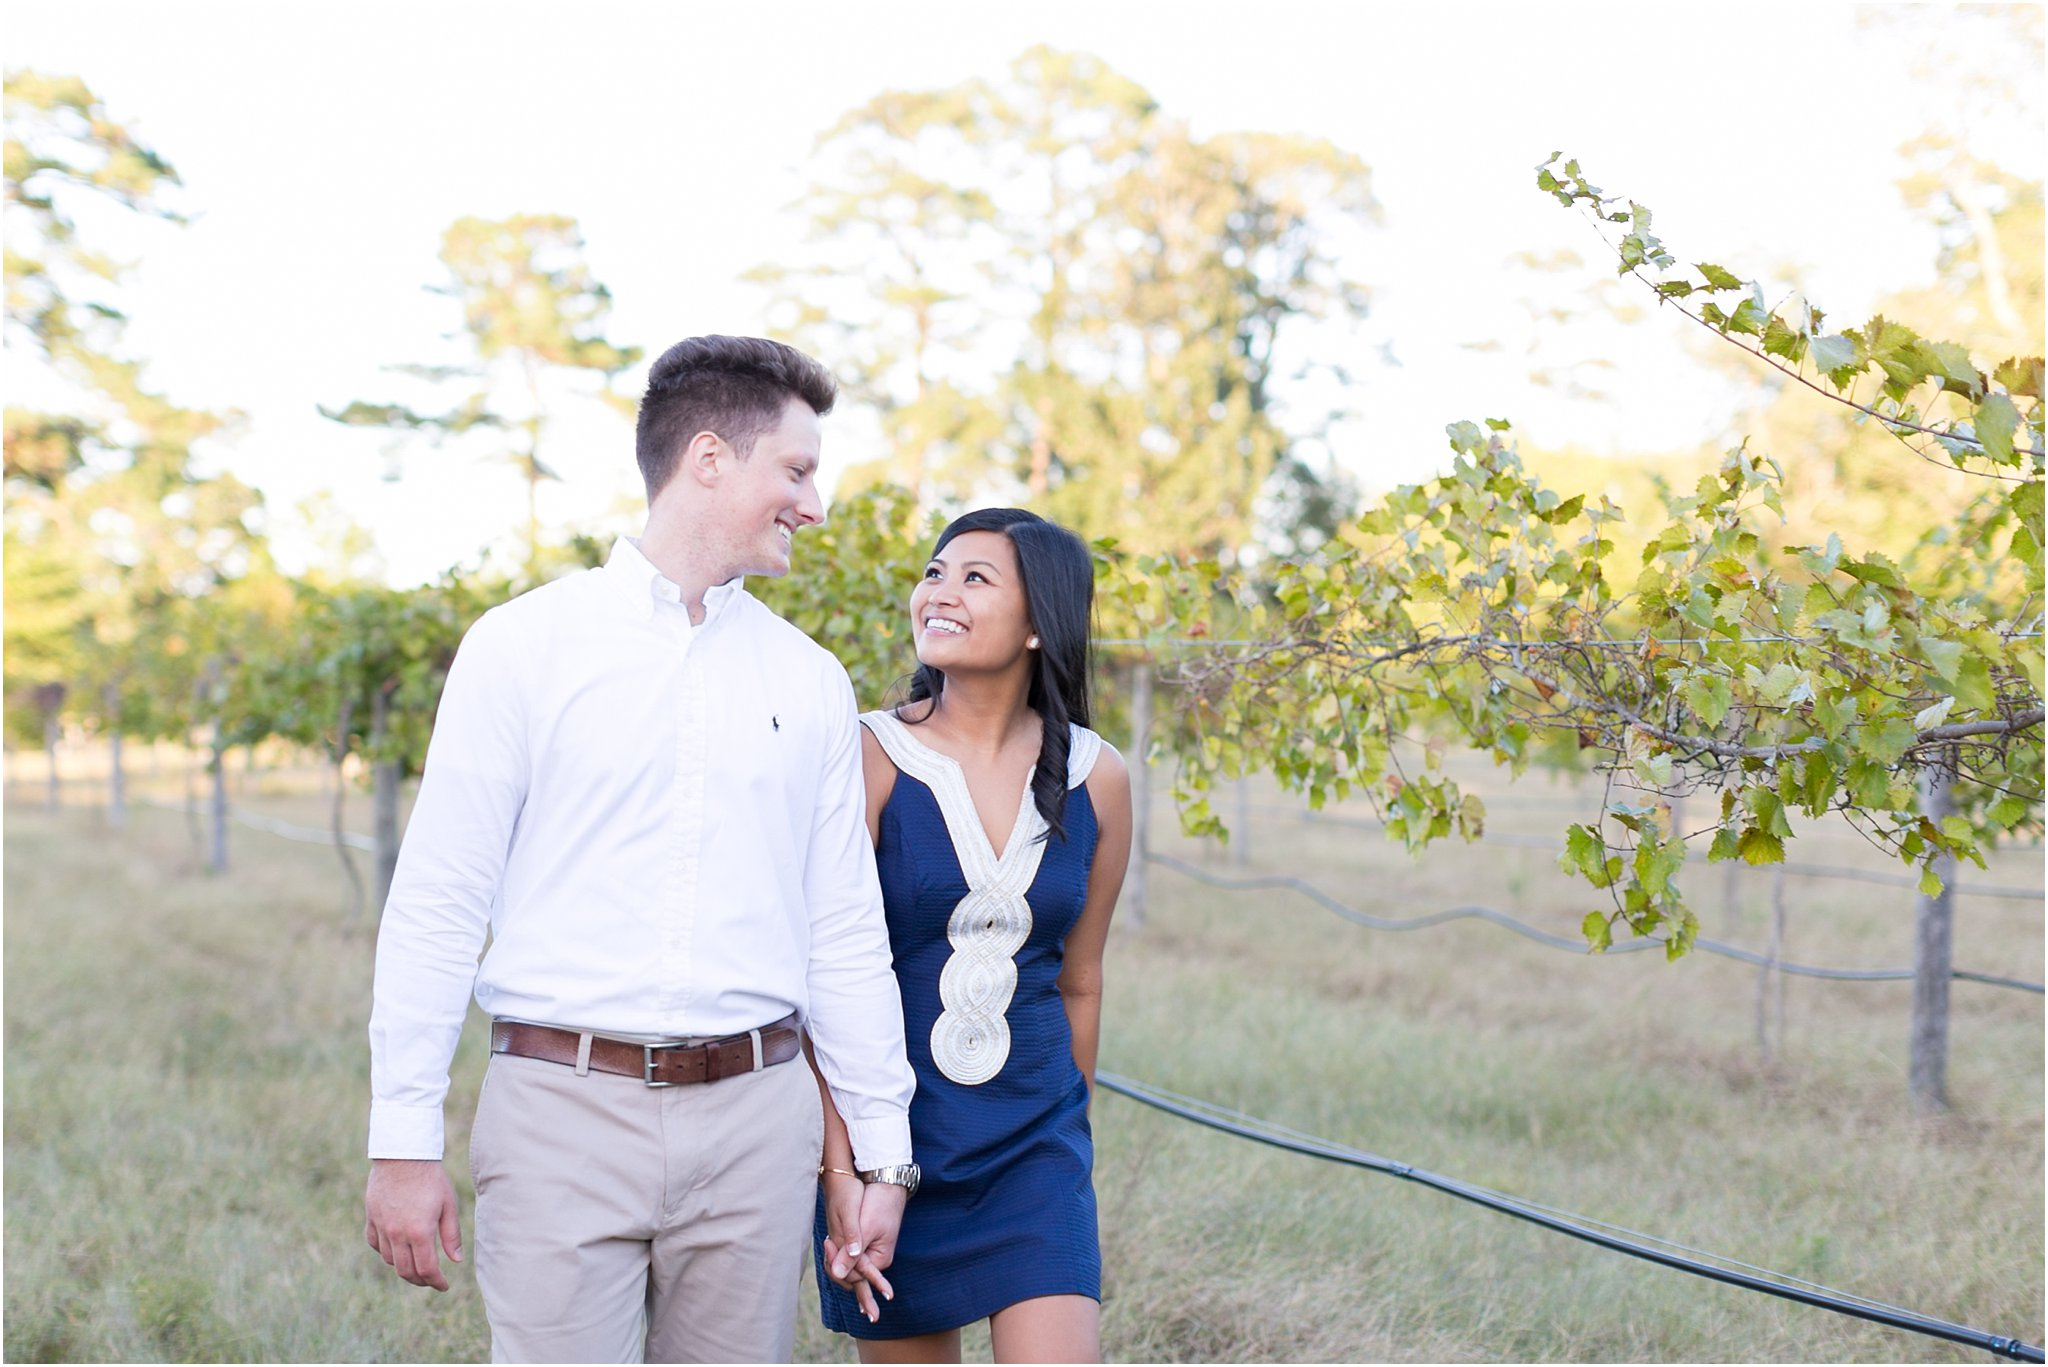 jessica_ryan_photography_virginia_smithfield_historical_downtown_engagement_portraits_candid_authentic_3727